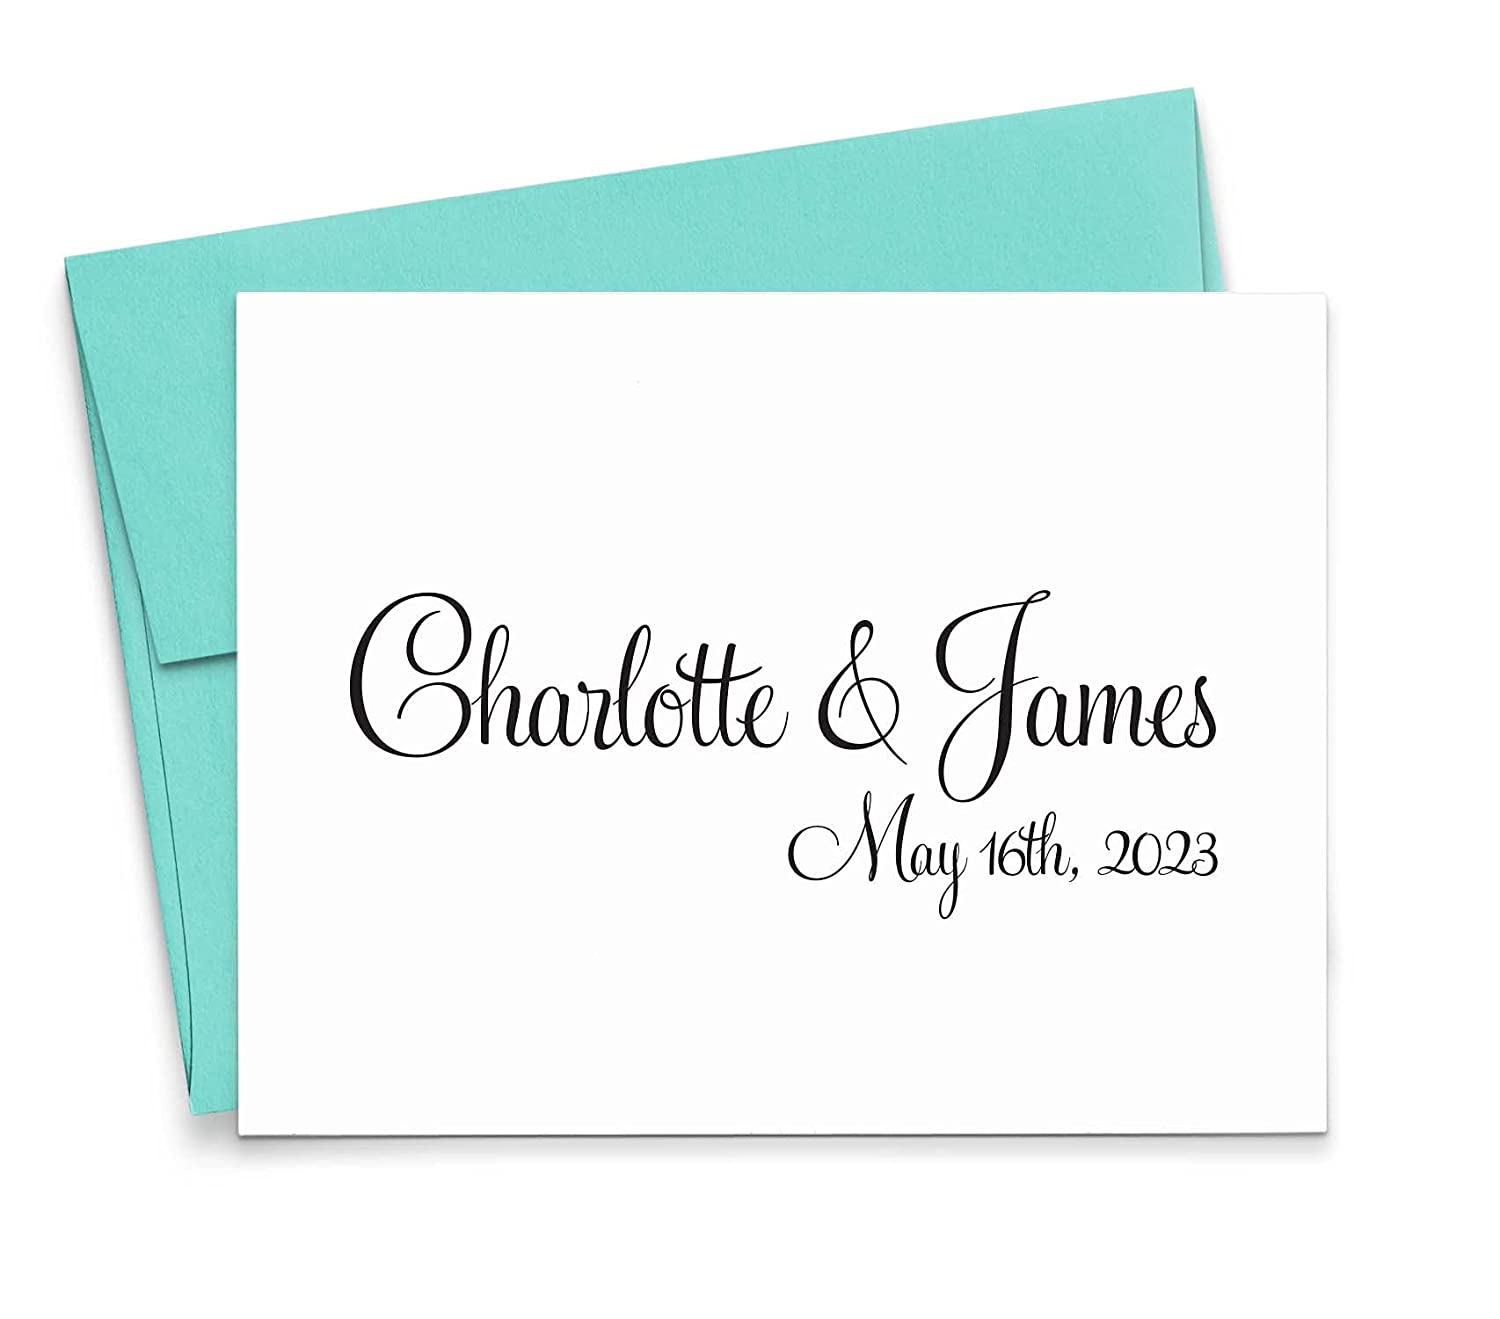 Personalized favorite Wedding Thank You Cards